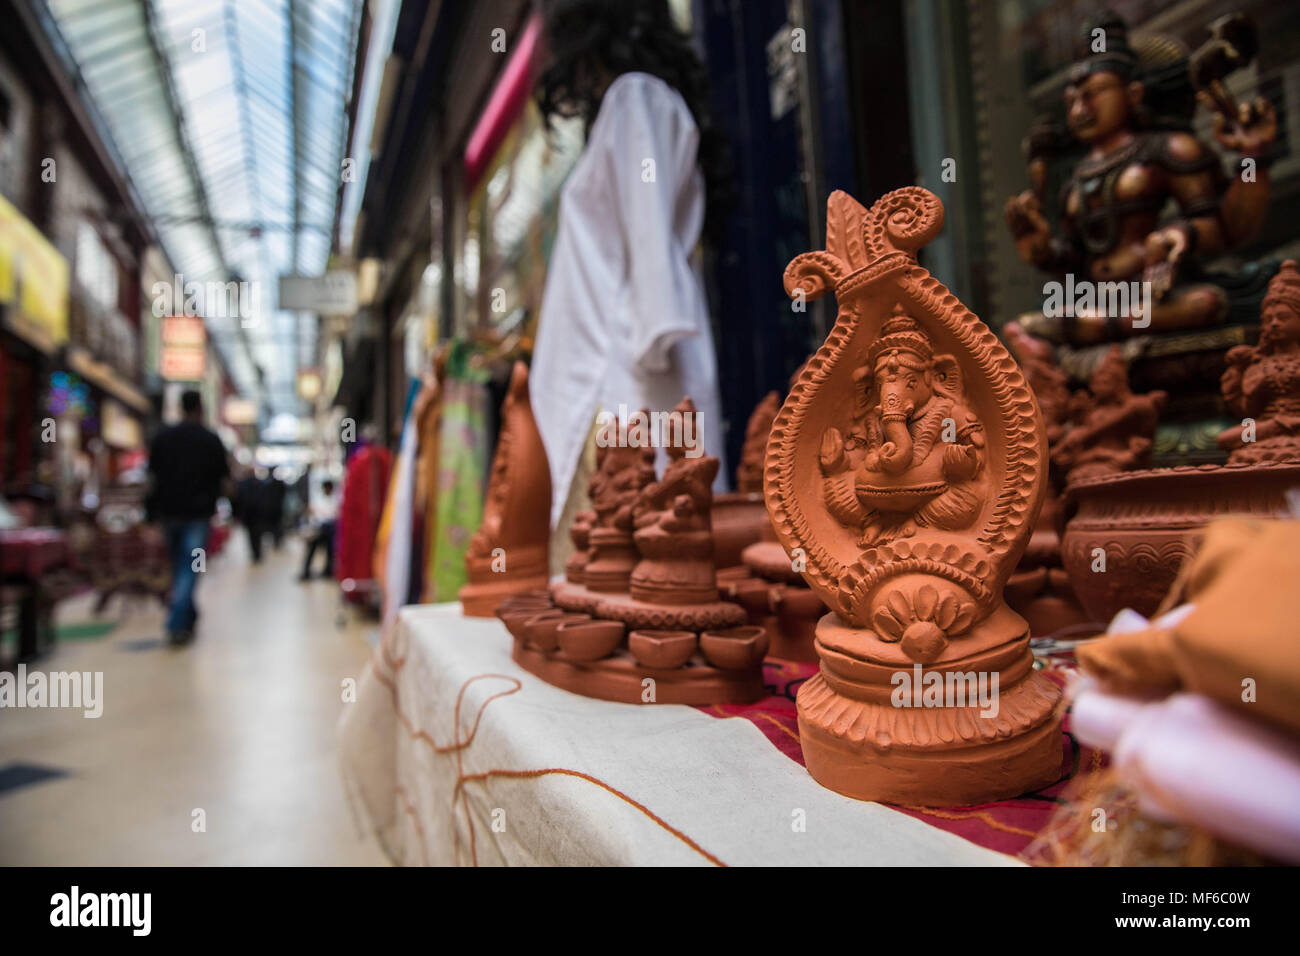 Ganesh statue in Passage Brady, Paris - Stock Image